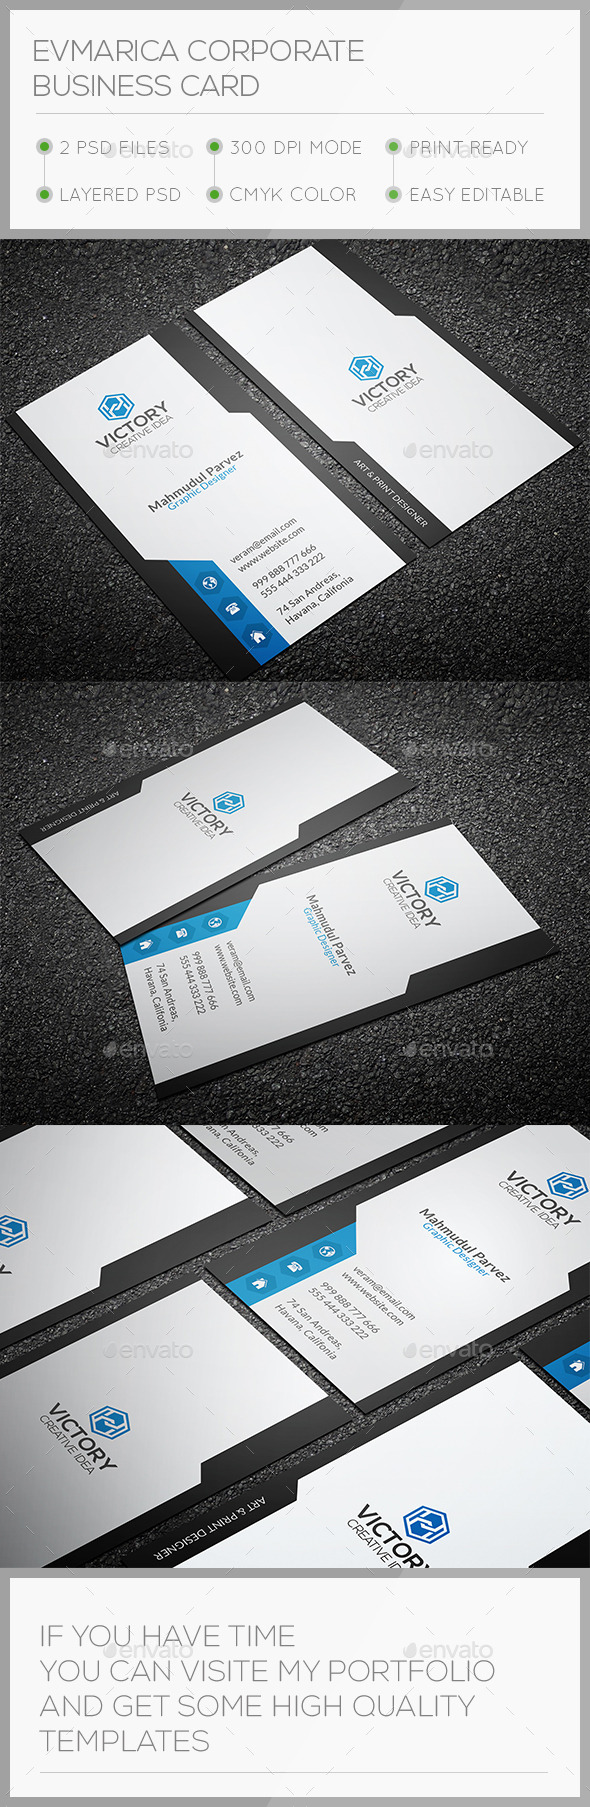 GraphicRiver Evmarica Corporate Business Card 10722436